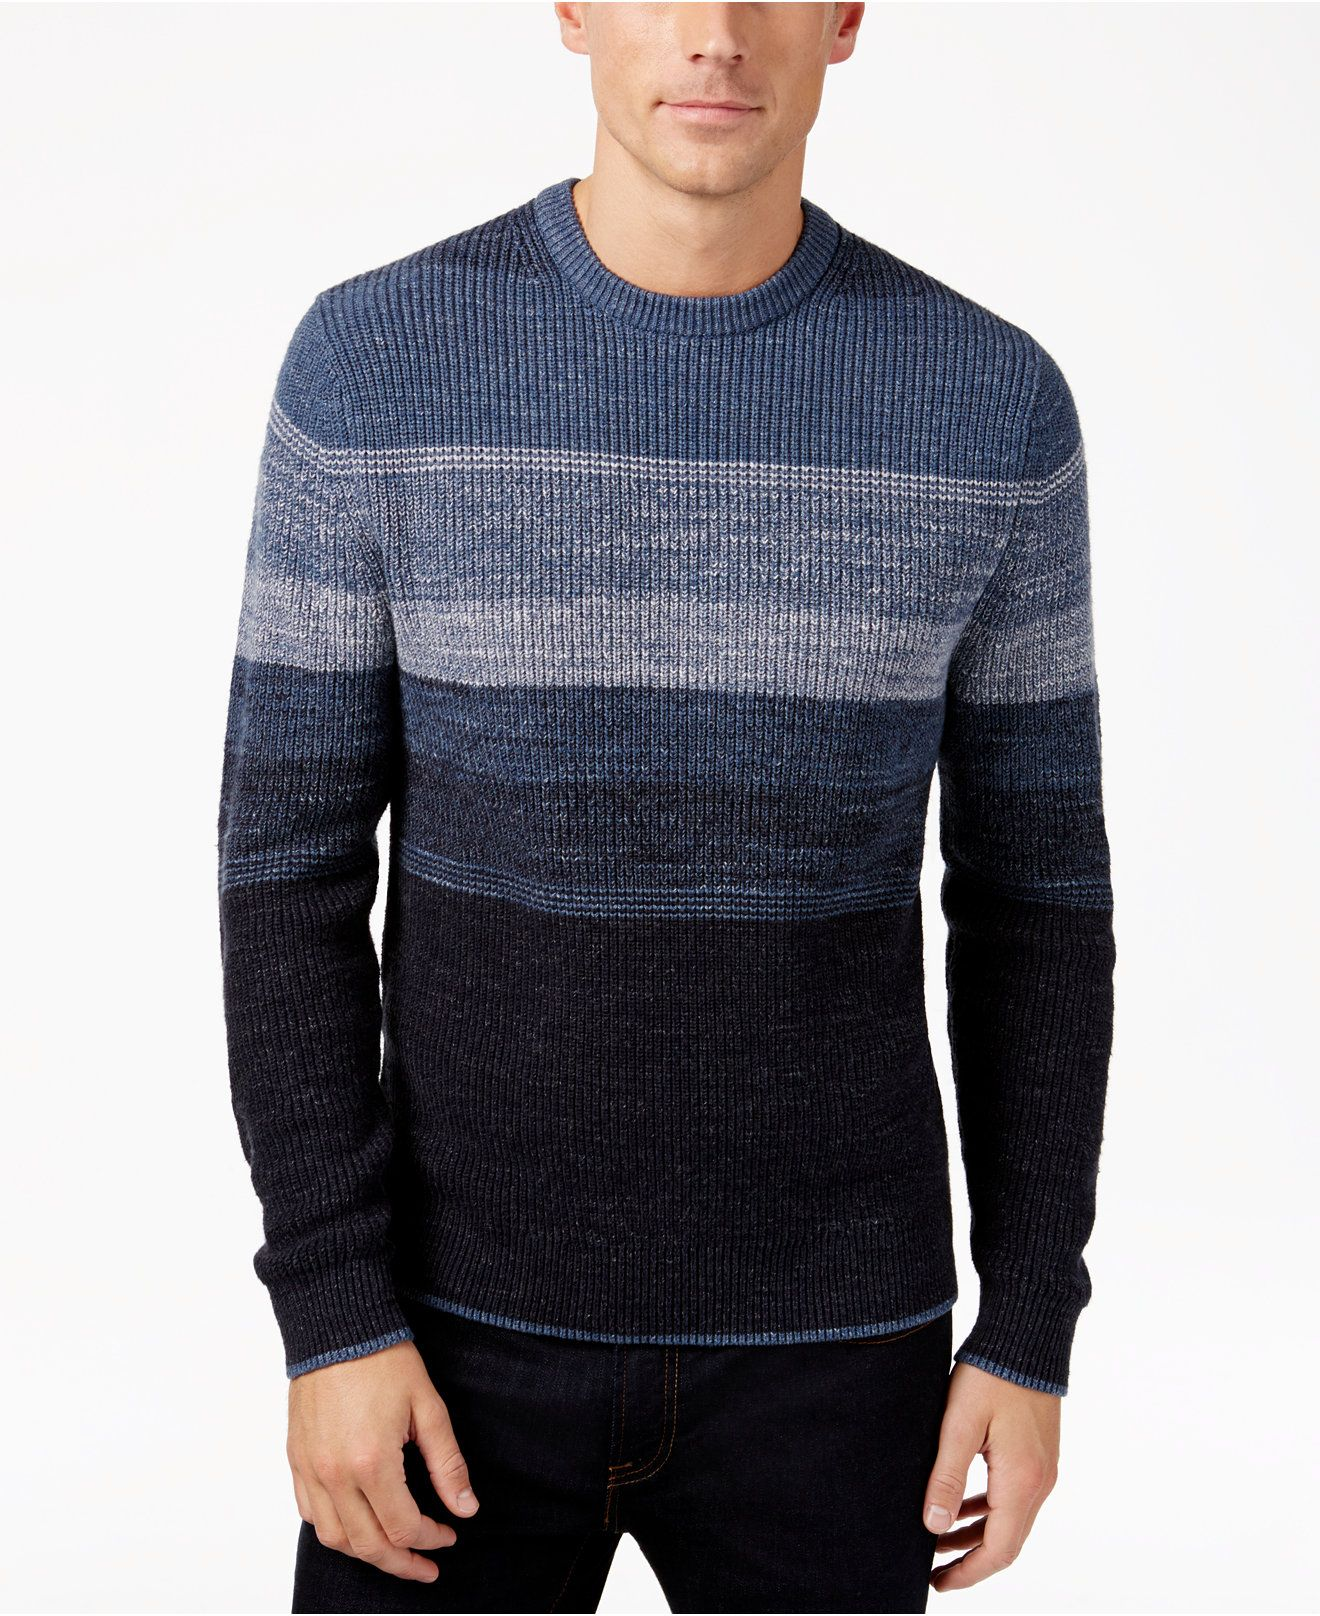 Tommy Bahama Men 39 S Marl Of The Story Sweater Sweaters Men Macy 39 S Men Sweater Winter Outfits Men Long Sleeve Tops Men [ 1616 x 1320 Pixel ]